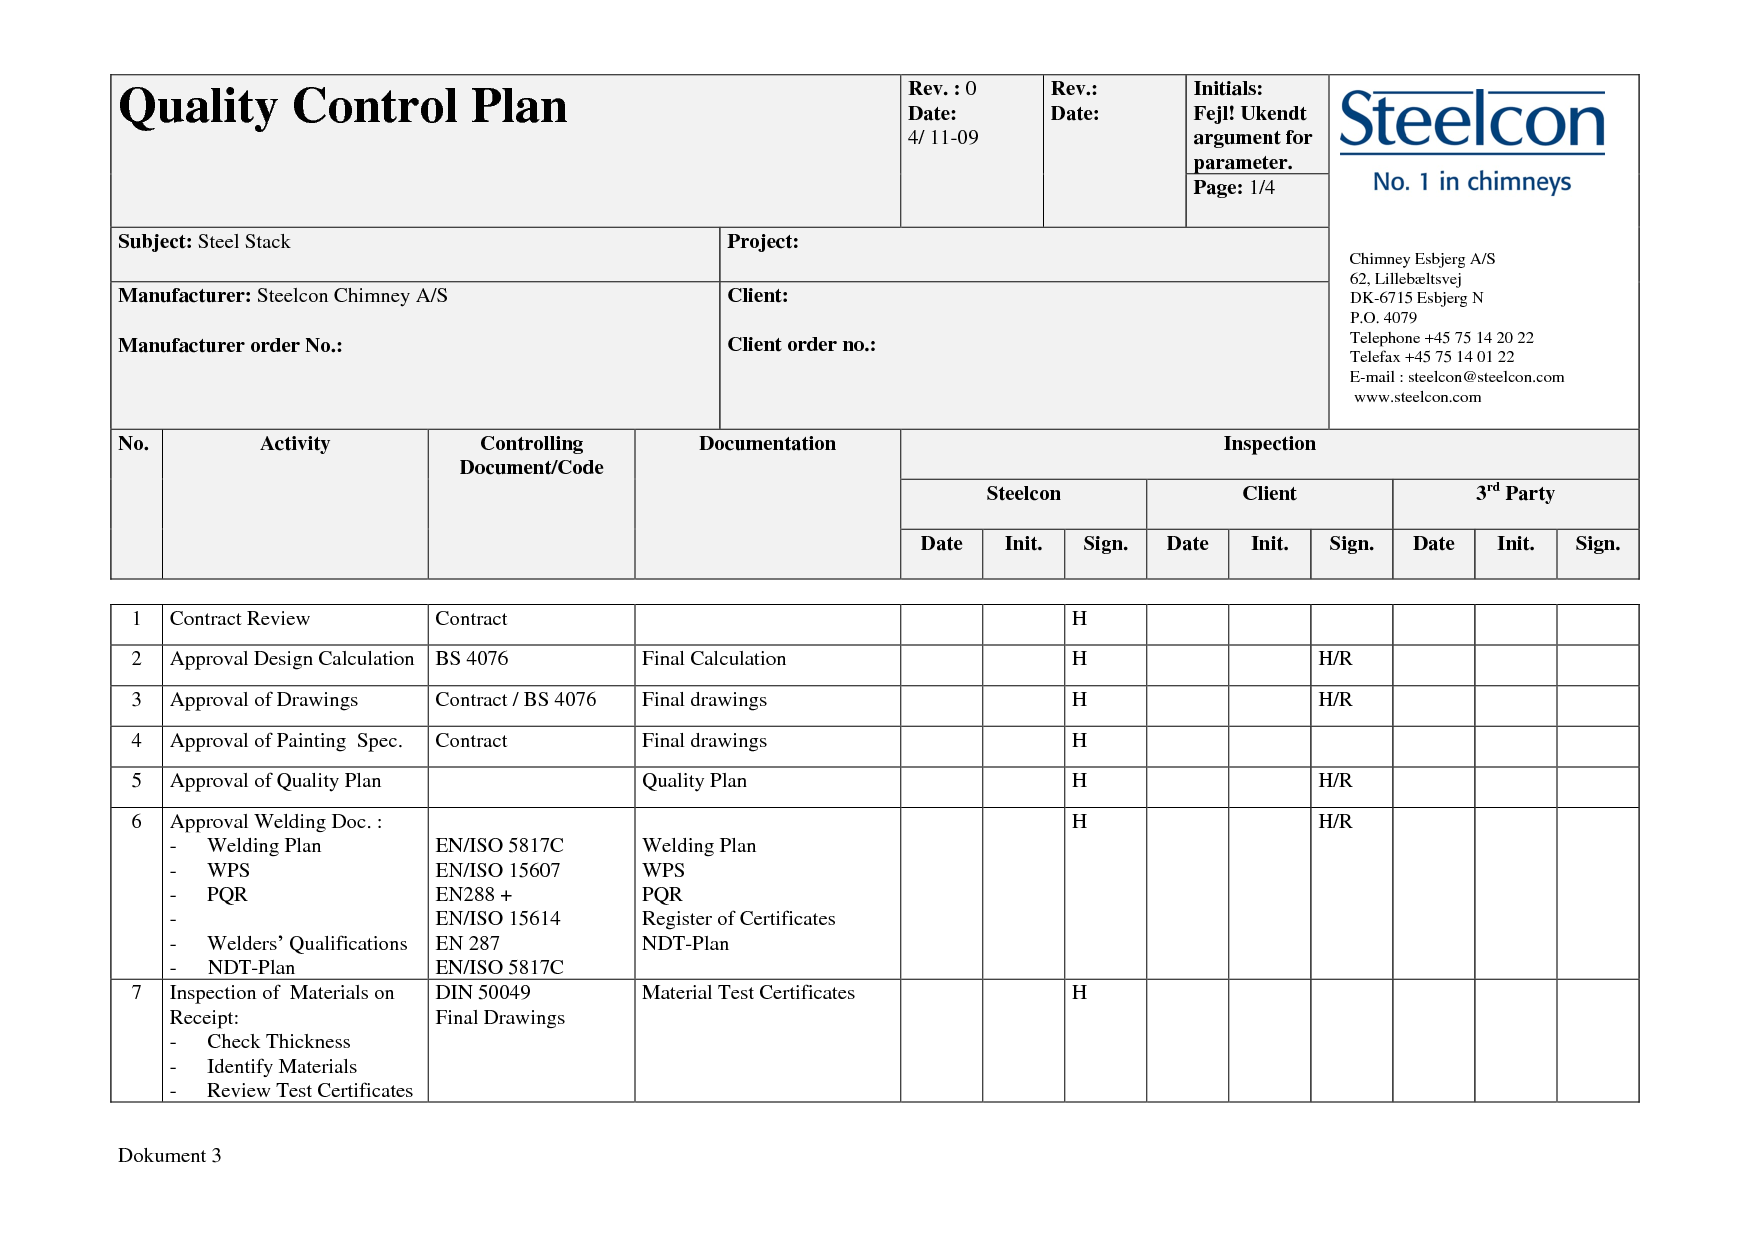 Quality Control Worksheet Template Printable Worksheets And Activities For Teachers Parents Tutors And Homeschool Families